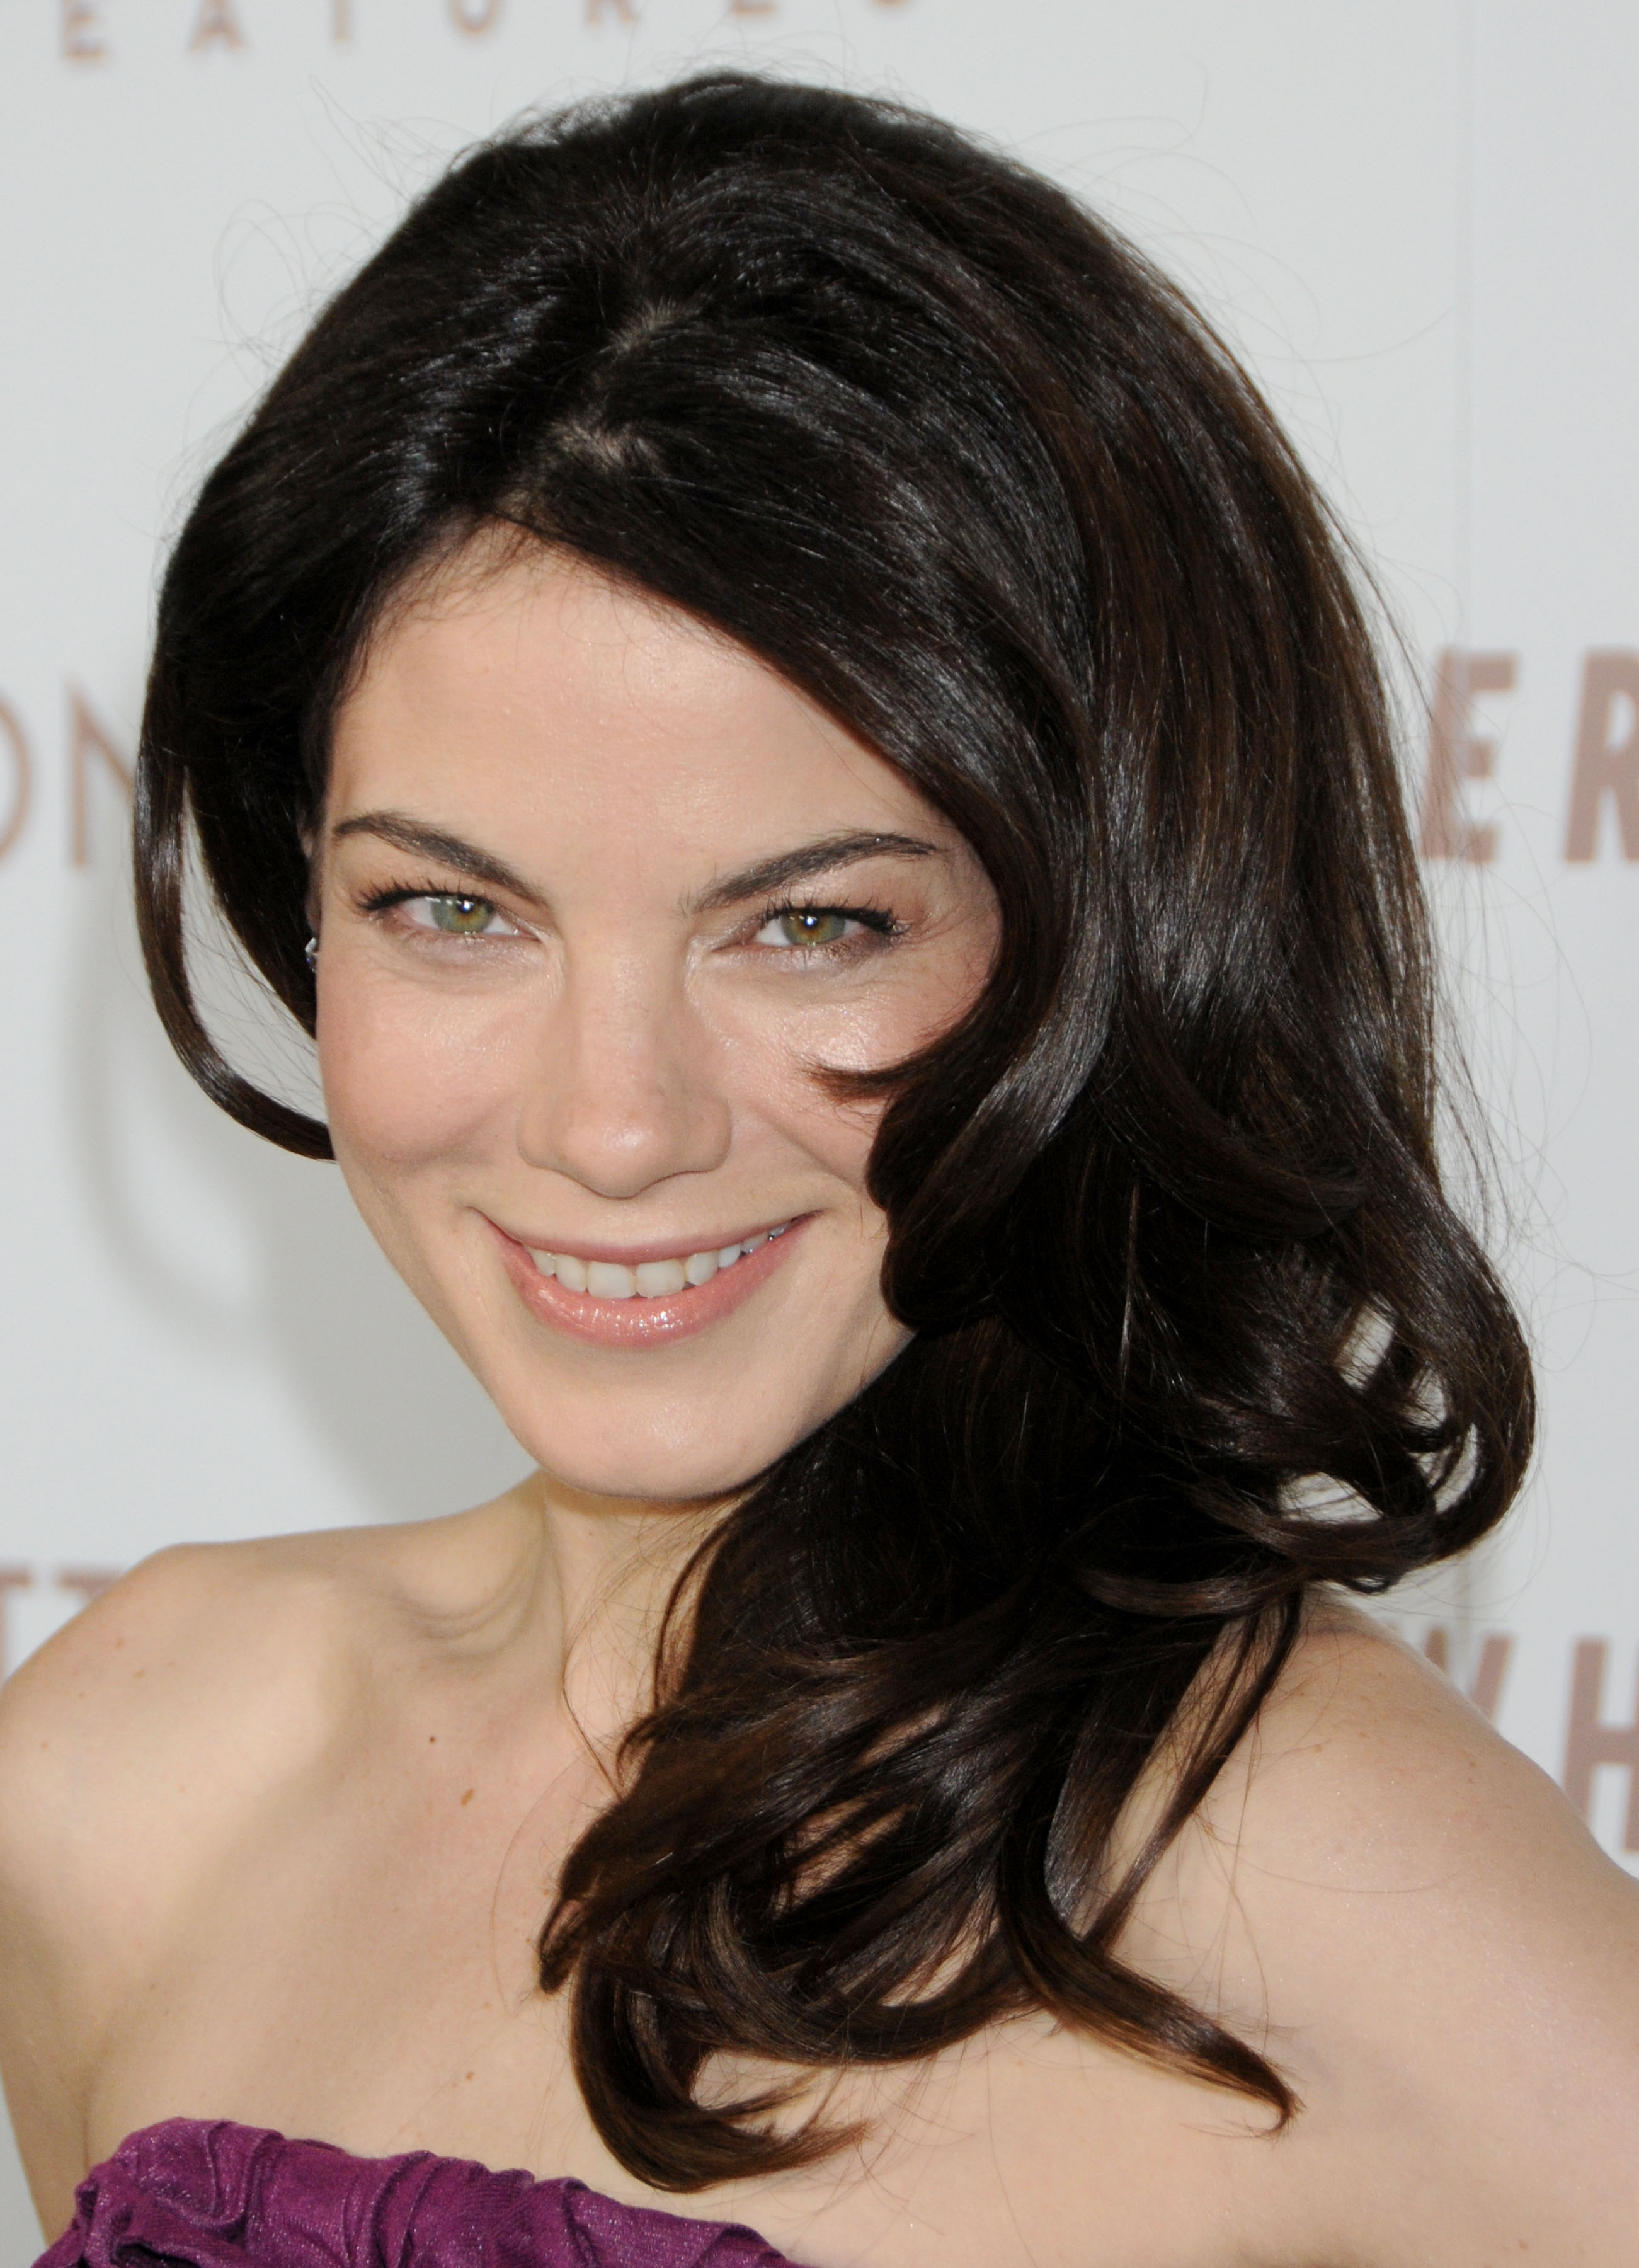 michelle monaghan astrothememichelle monaghan films, michelle monaghan wiki, michelle monaghan instagram, michelle monaghan site, michelle monaghan constantine, michelle monaghan 2017, michelle monaghan fansite, michelle monaghan кинопоиск, michelle monaghan husband, michelle monaghan robert downey jr, michelle monaghan astrotheme, michelle monaghan insta, michelle monaghan style, michelle monaghan the best of me, michelle monaghan fort bliss interview, michelle monaghan dated who, michelle monaghan ruth wilson, michelle monaghan pinterest, michelle monaghan late late show, michelle monaghan 2016